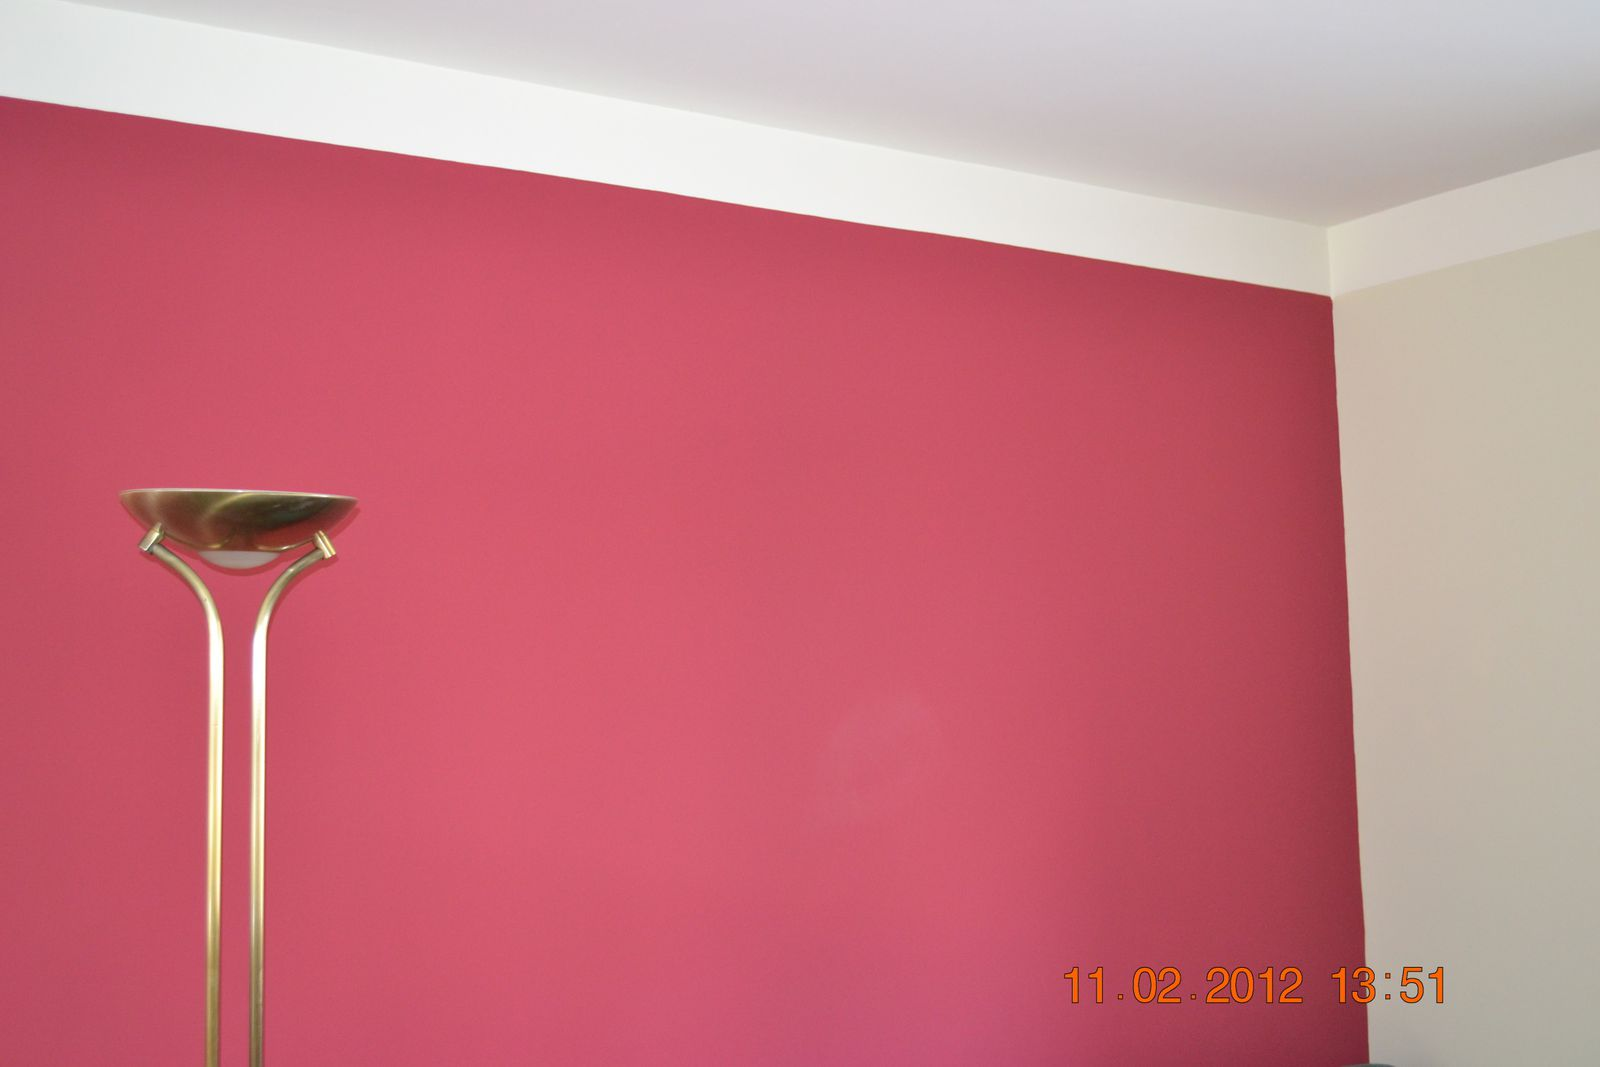 Prix Peinture Farrow And Ball Farrow And Ball Peinture Farrow Ball Peintures Anciens